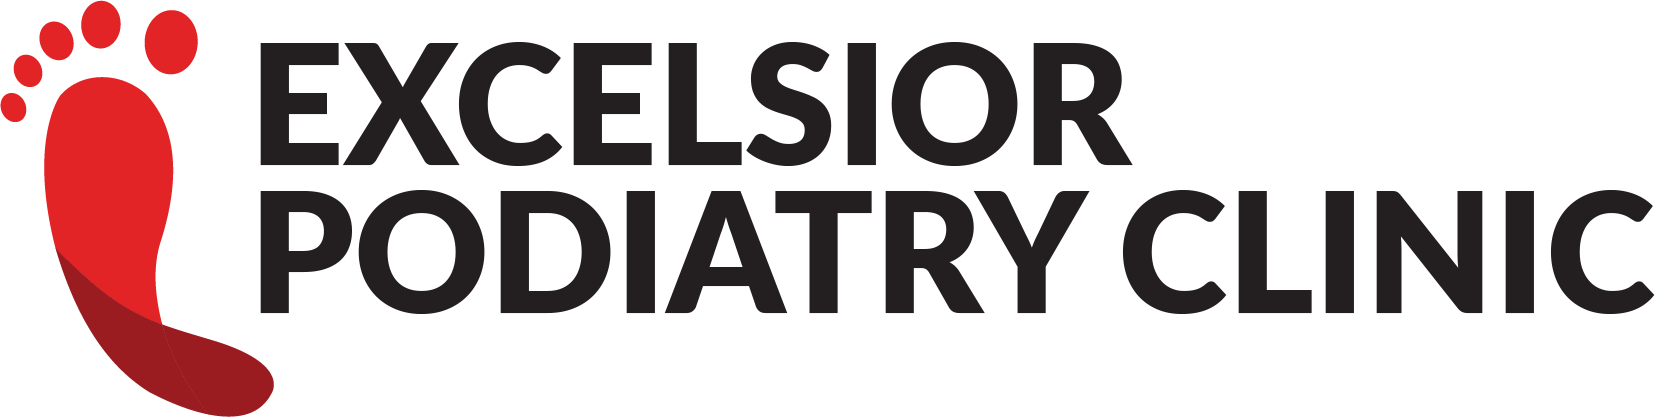 Excelsior Podiatary Clinic